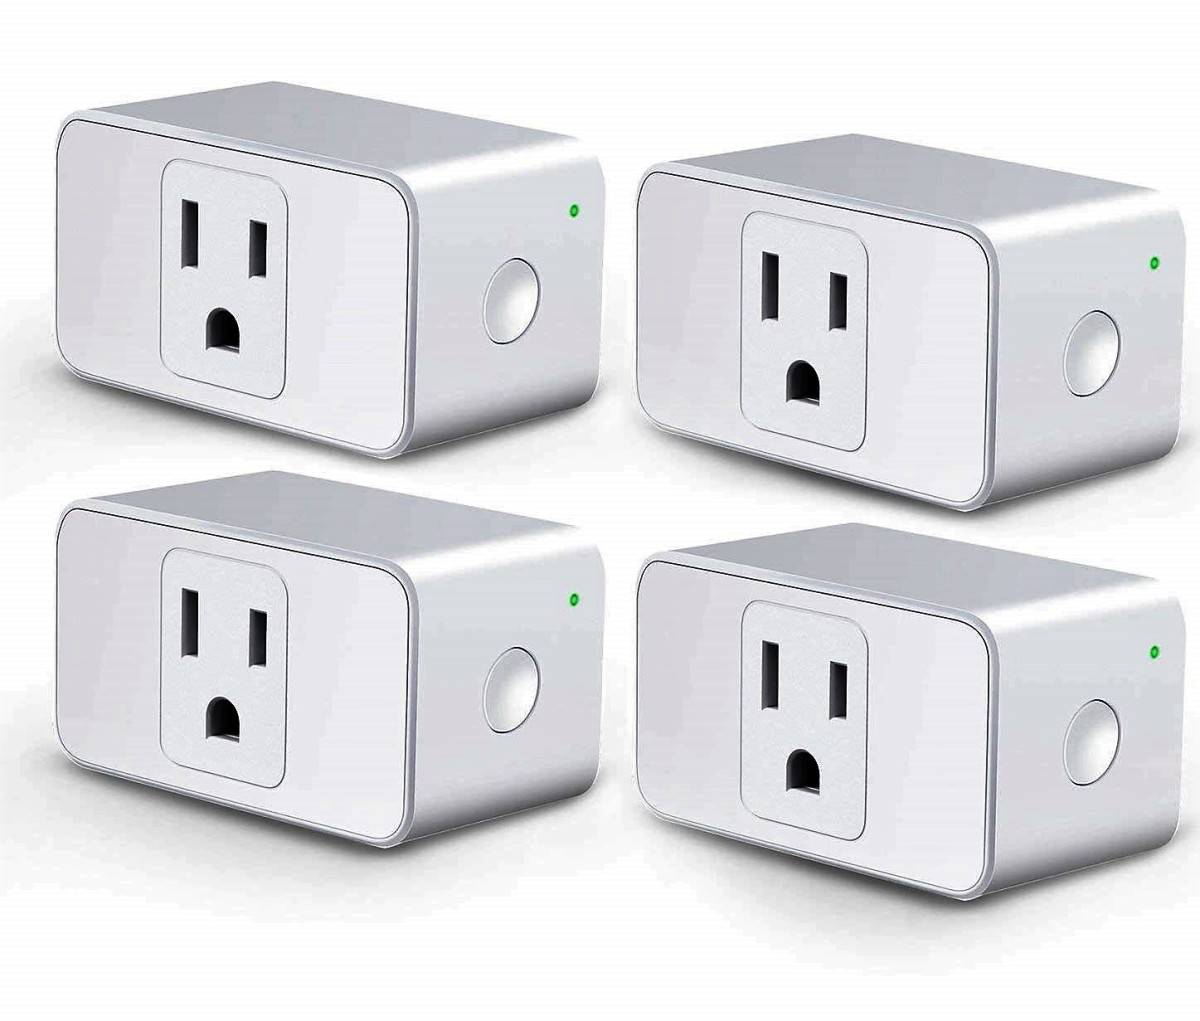 Review of Meross Smart Plug Mini (Works With Amazon Alexa & Google Home)